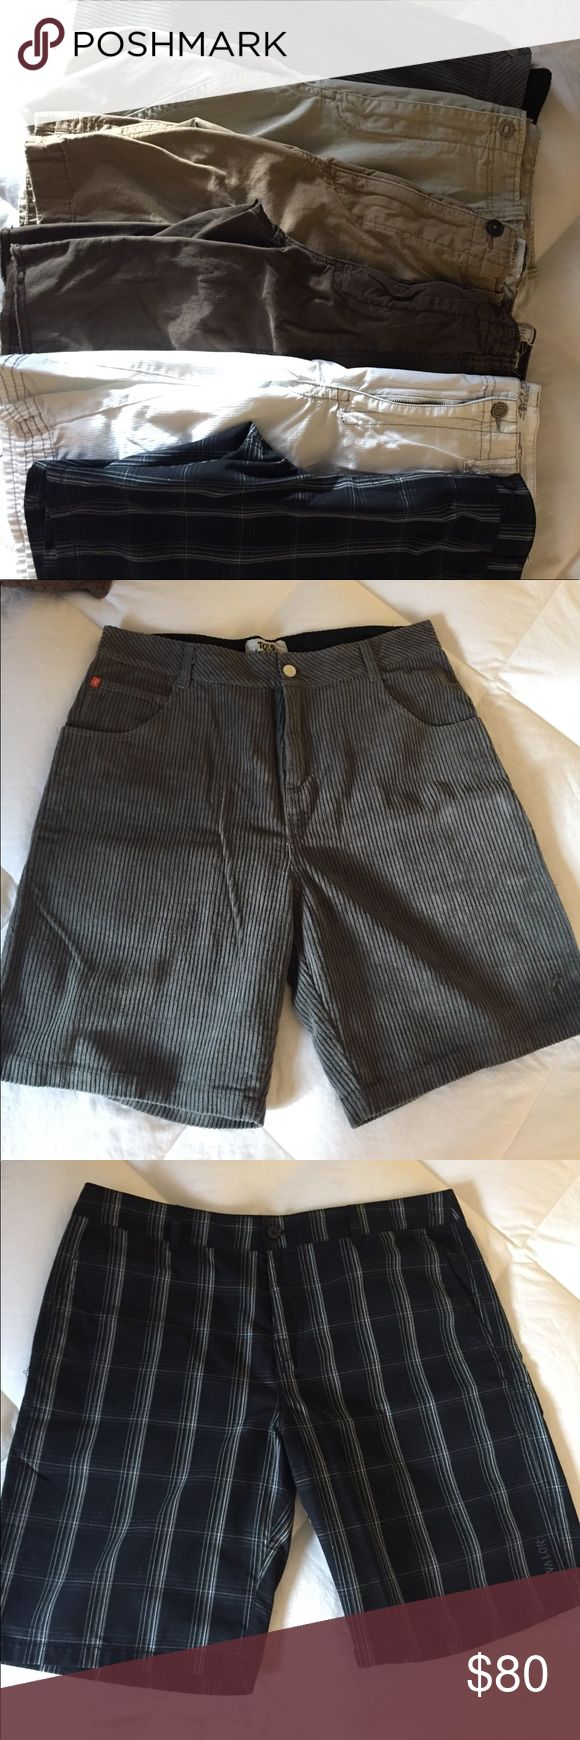 Bundle of 6 Men's Shorts Bundle of men's shorts, all size 36, various brands. Toes on the nose, Valor, J. Crew, American Eagle, Aeropostale, and Buckle. All in EUC! Shorts Cargo